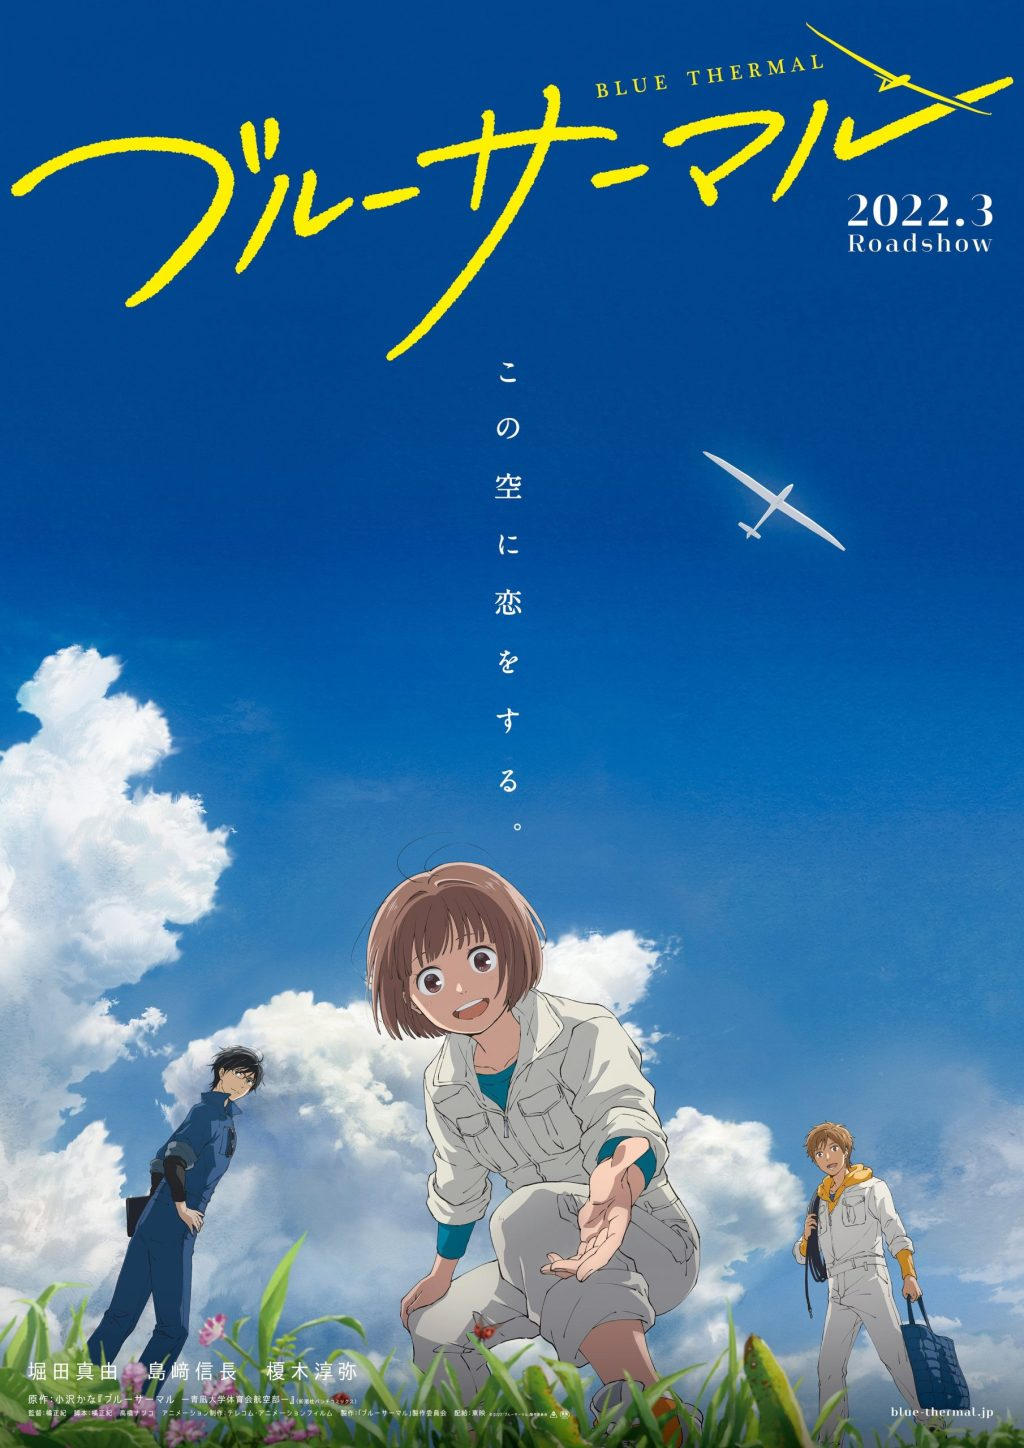 """""""Blue Thermal"""" Anime film has been announced! The film is scheduled for March 2022 in Japan."""